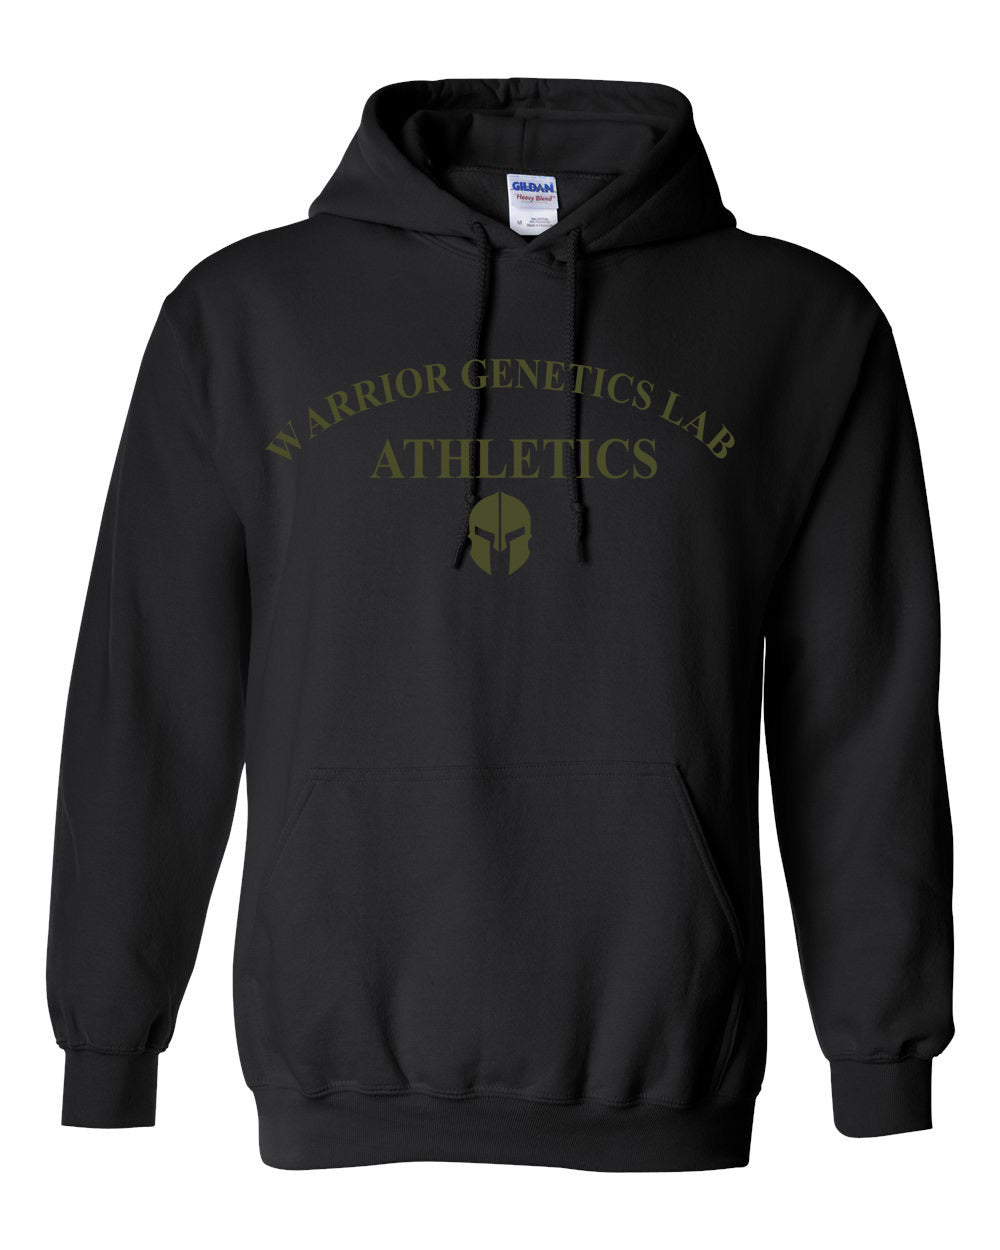 WGL Athletics Pullover - Warrior genetics Lab